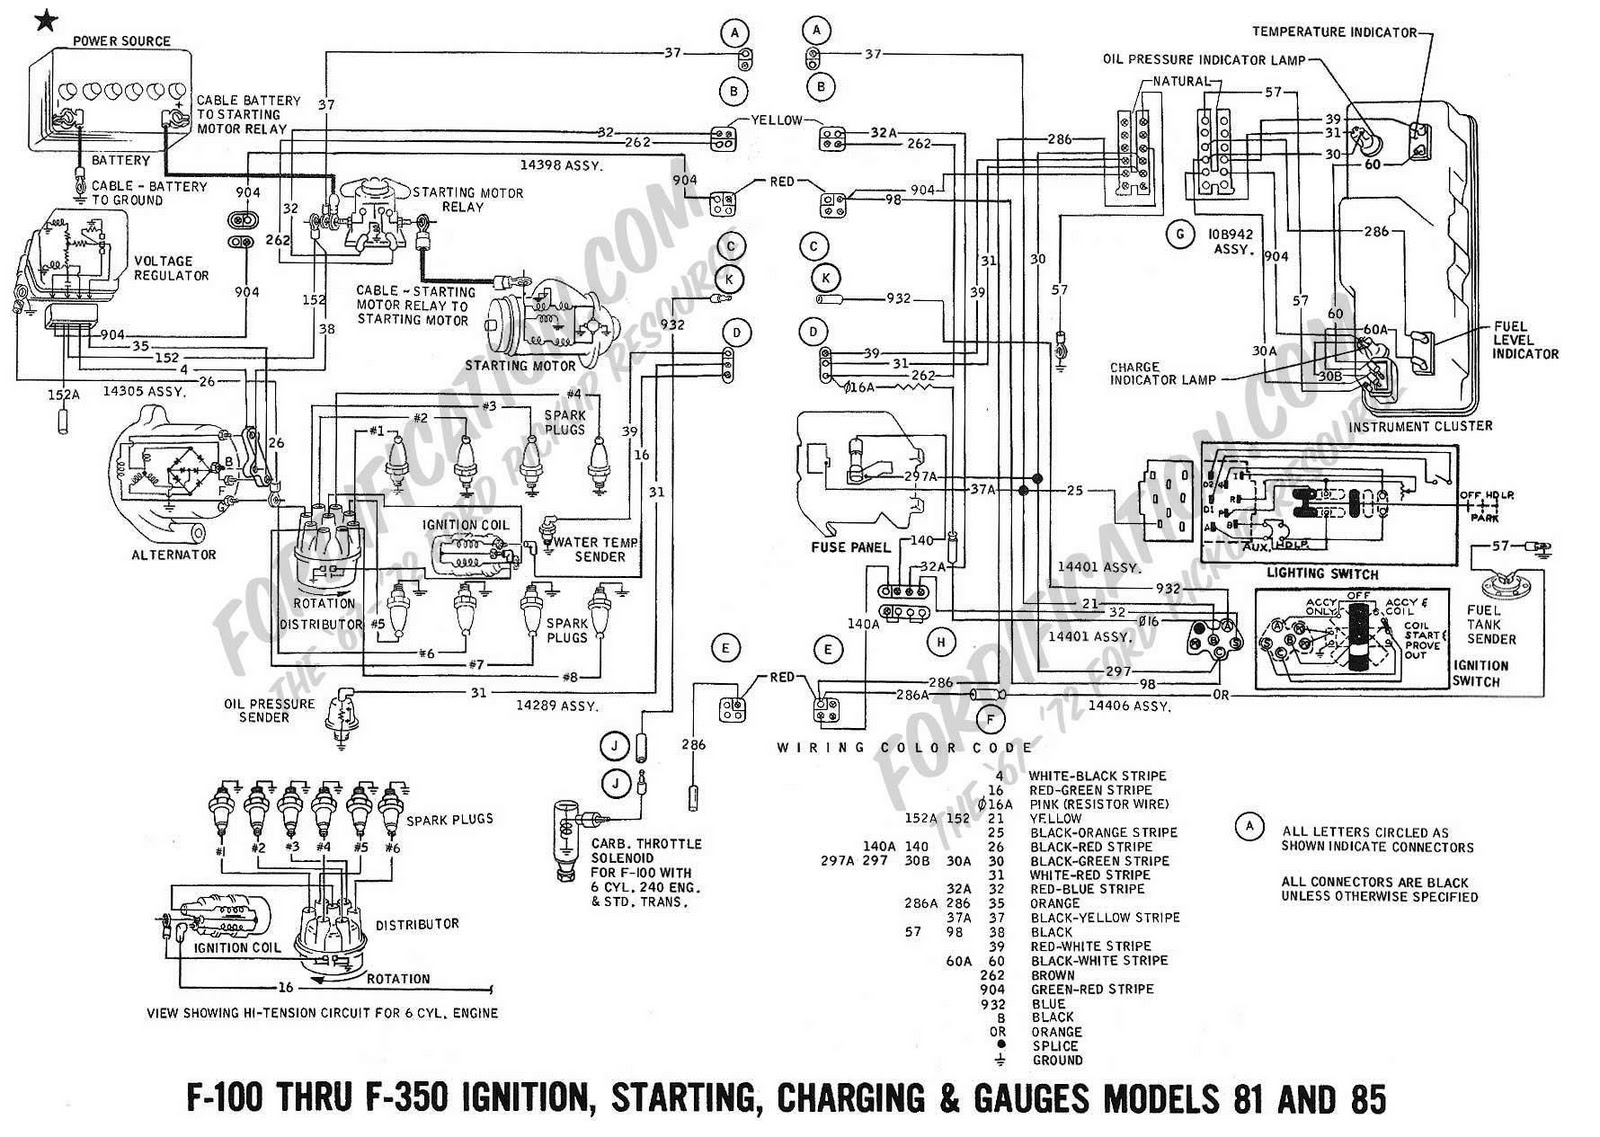 9n ford tractor wiring diagram 2001 ford mustang wiring diagrams, Wiring diagram